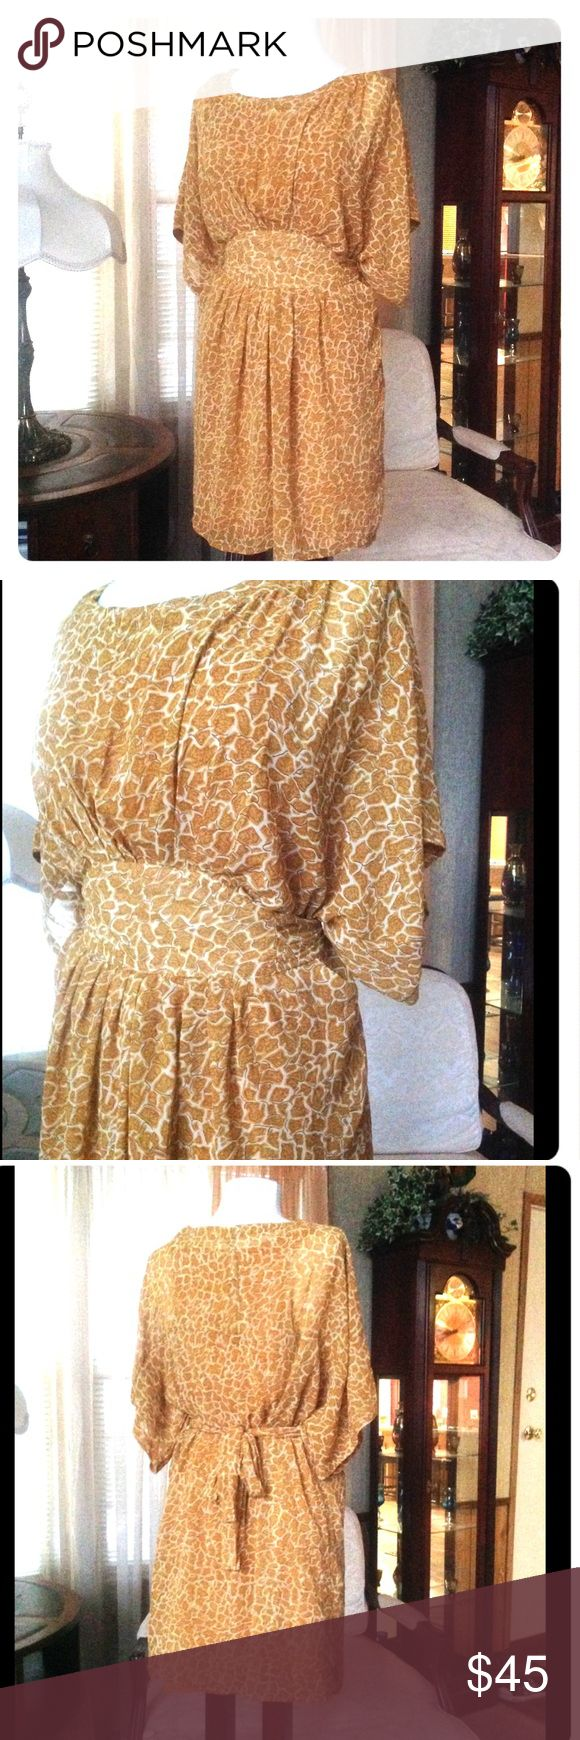 W118 Walter Baker dress In excellent condition. Only worn just once.         .                        d W118 by Walter Baker Dresses